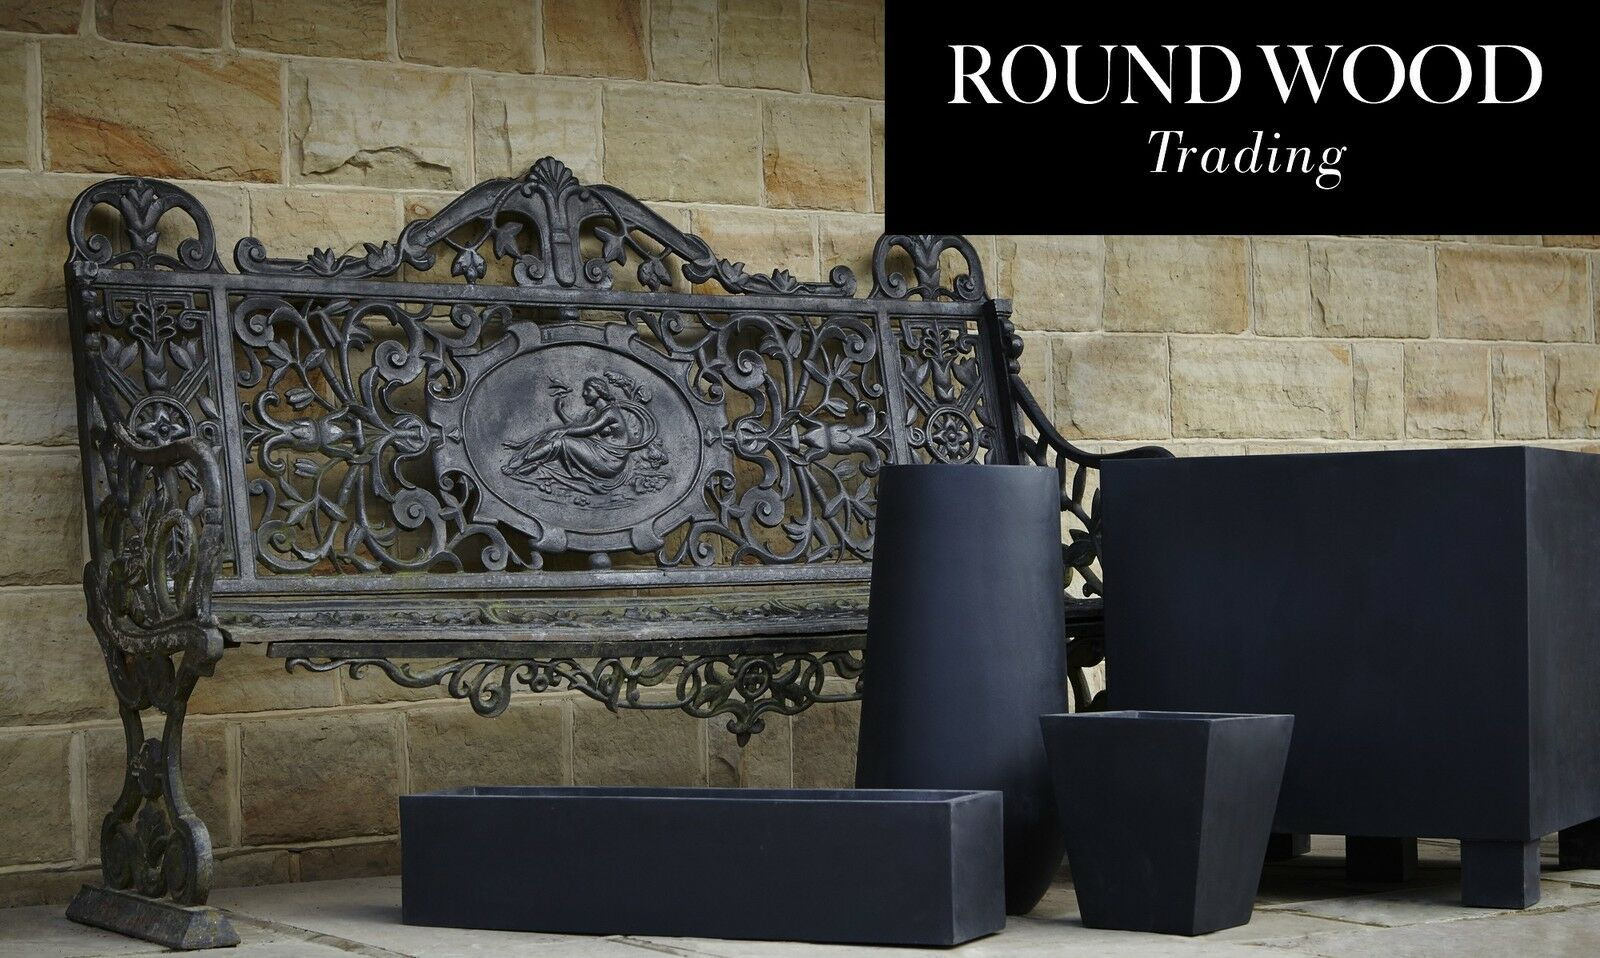 Round Wood Trading